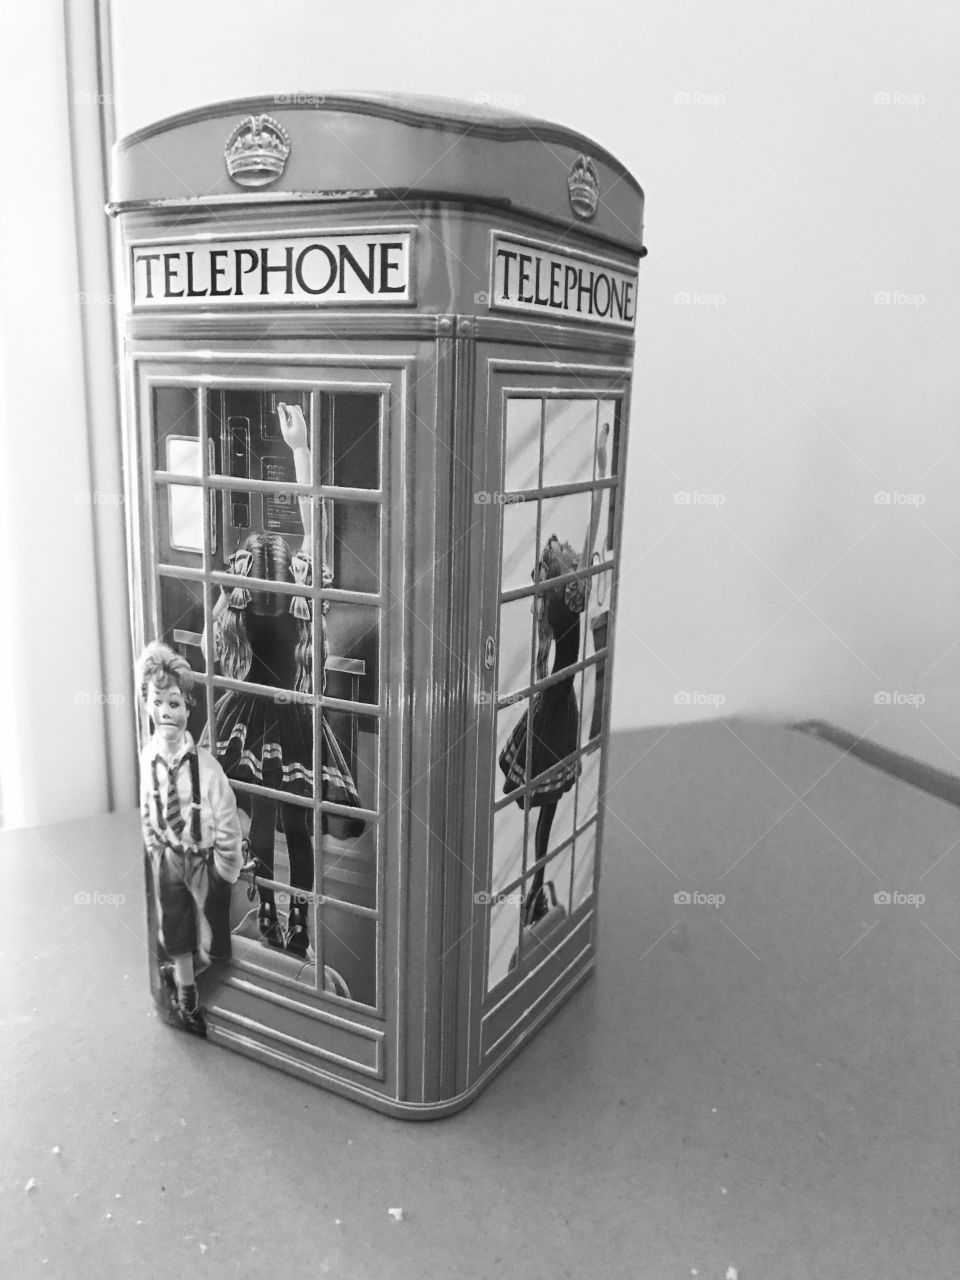 Telephone booth-telephone-sweets